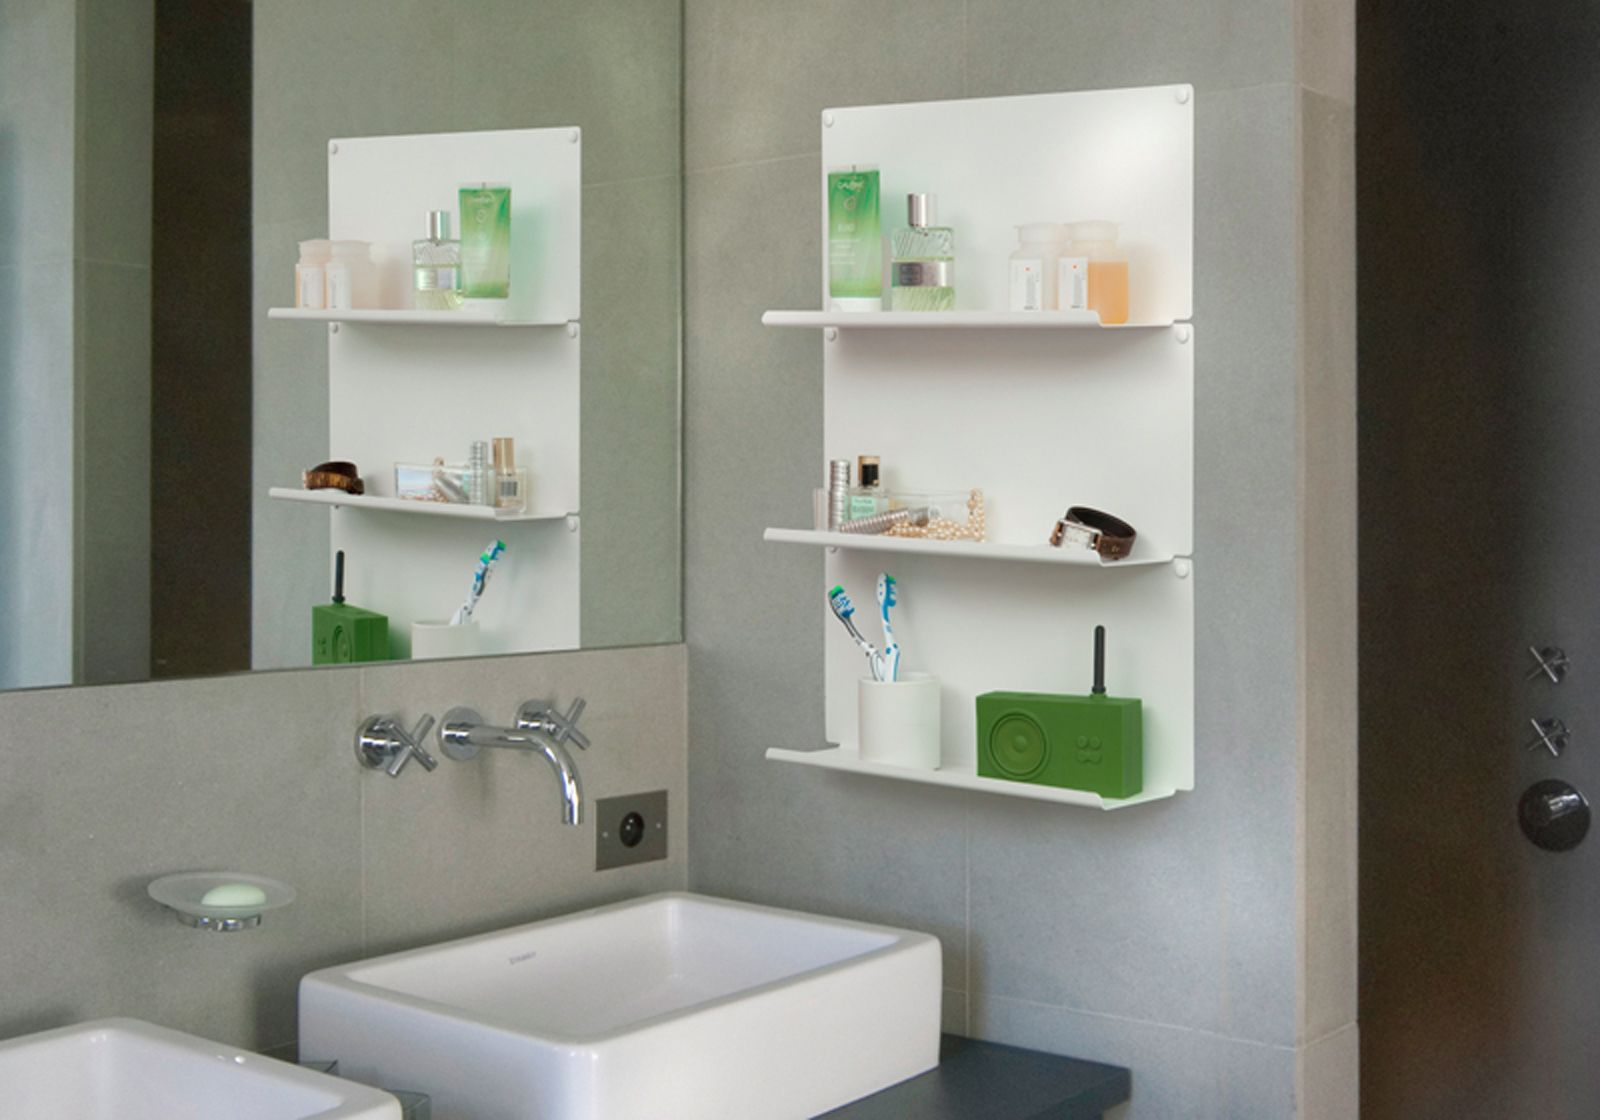 Bathroom shelves le for Les salles de bain